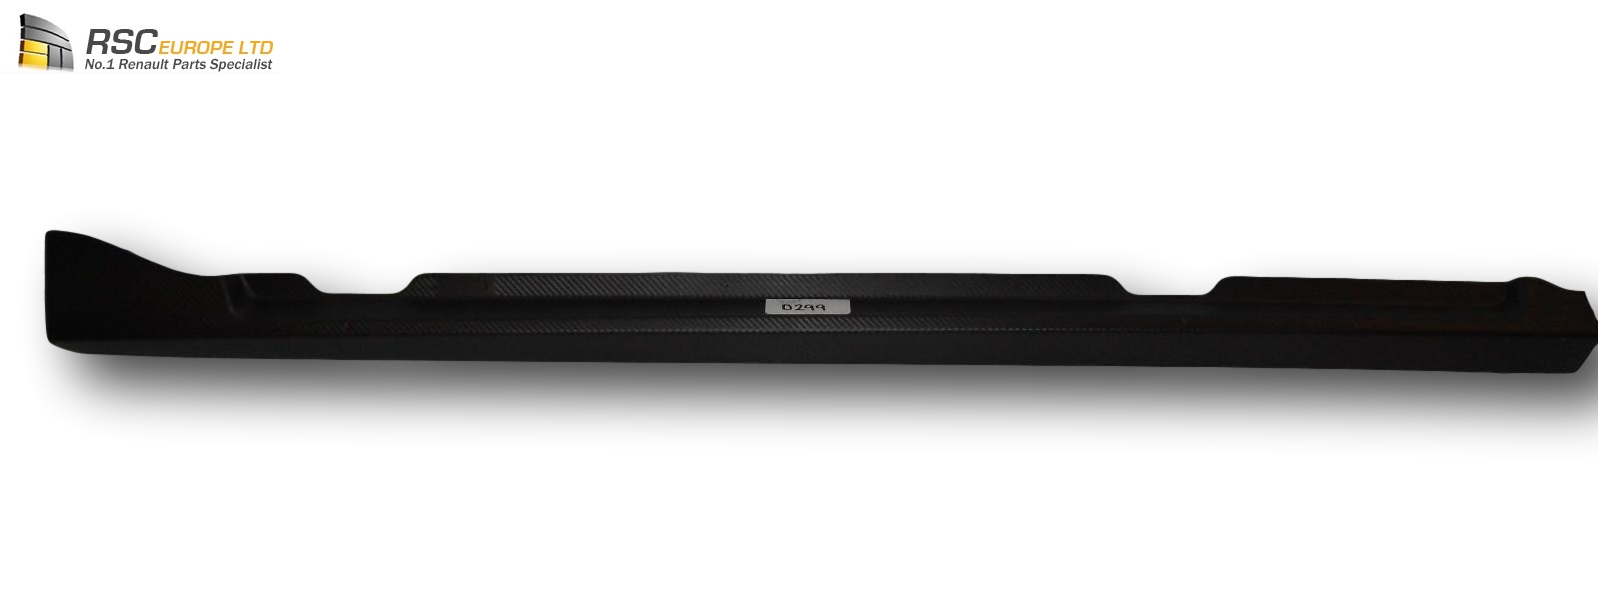 Renault Clio Iv Side Skirt Door Sill Carbon Affect 8201289561